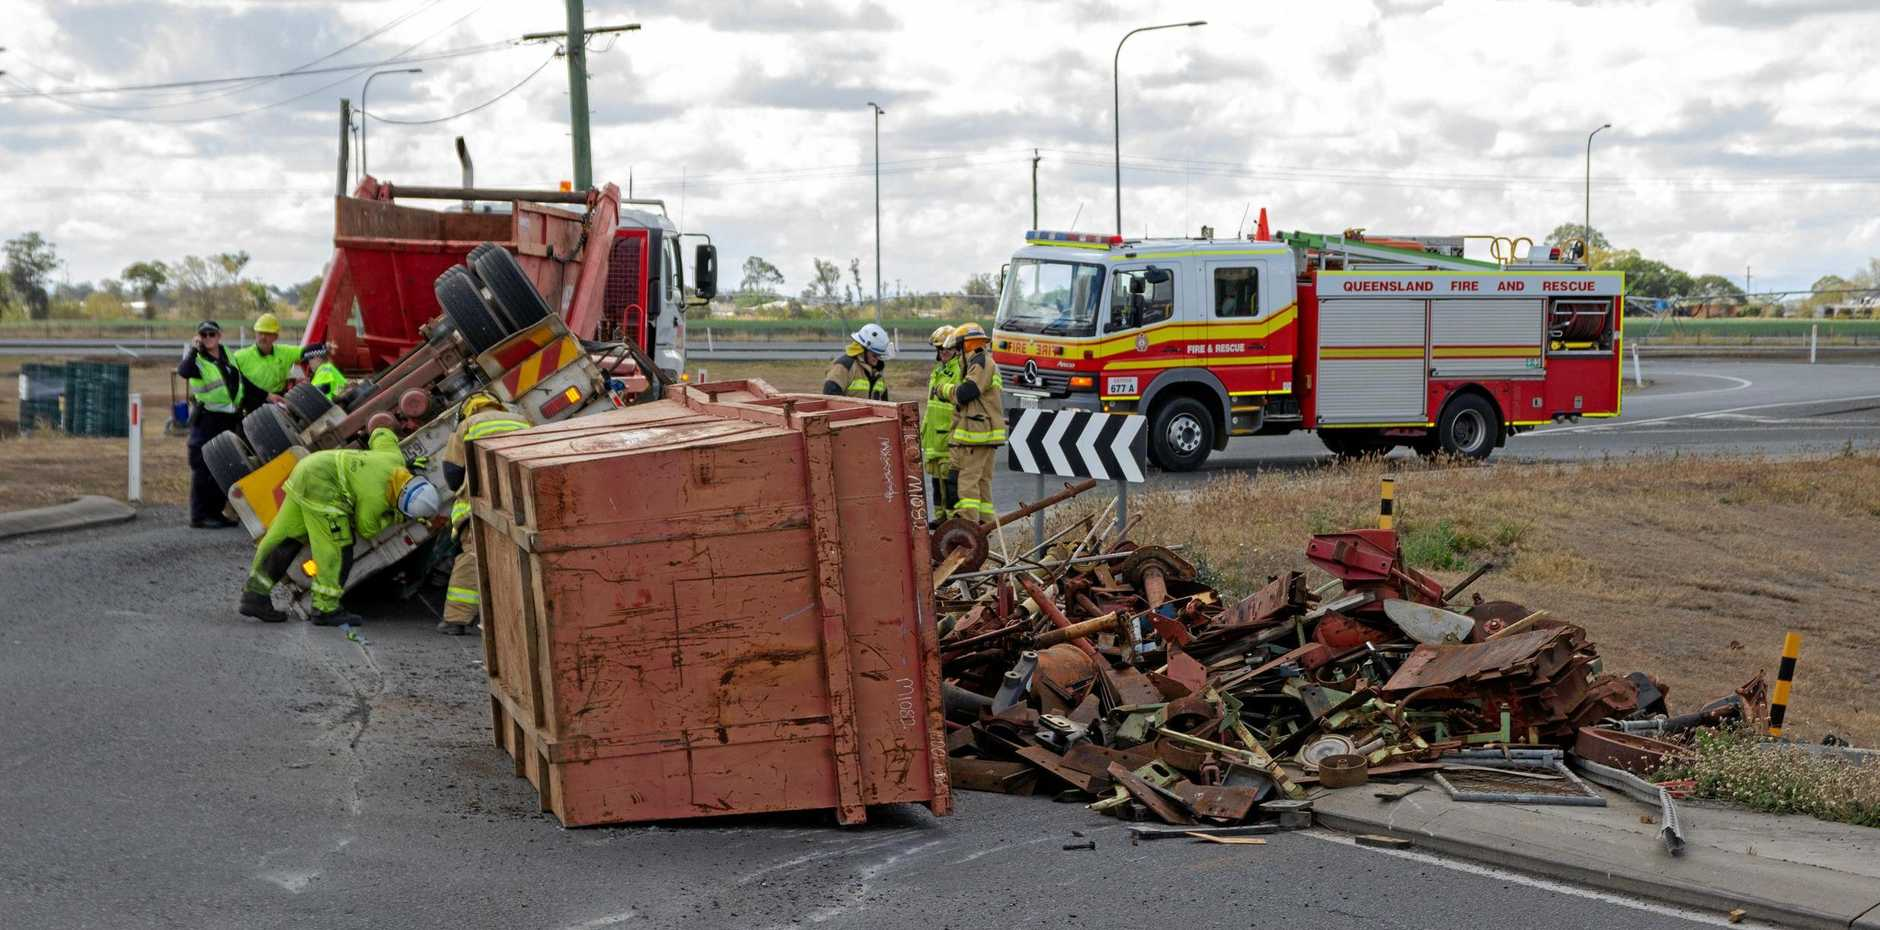 A truck's trailer has rolled on the roundabout connecting Eastern Drive with the westbound lanes of the Warrego Highway, spreading debris across the road.